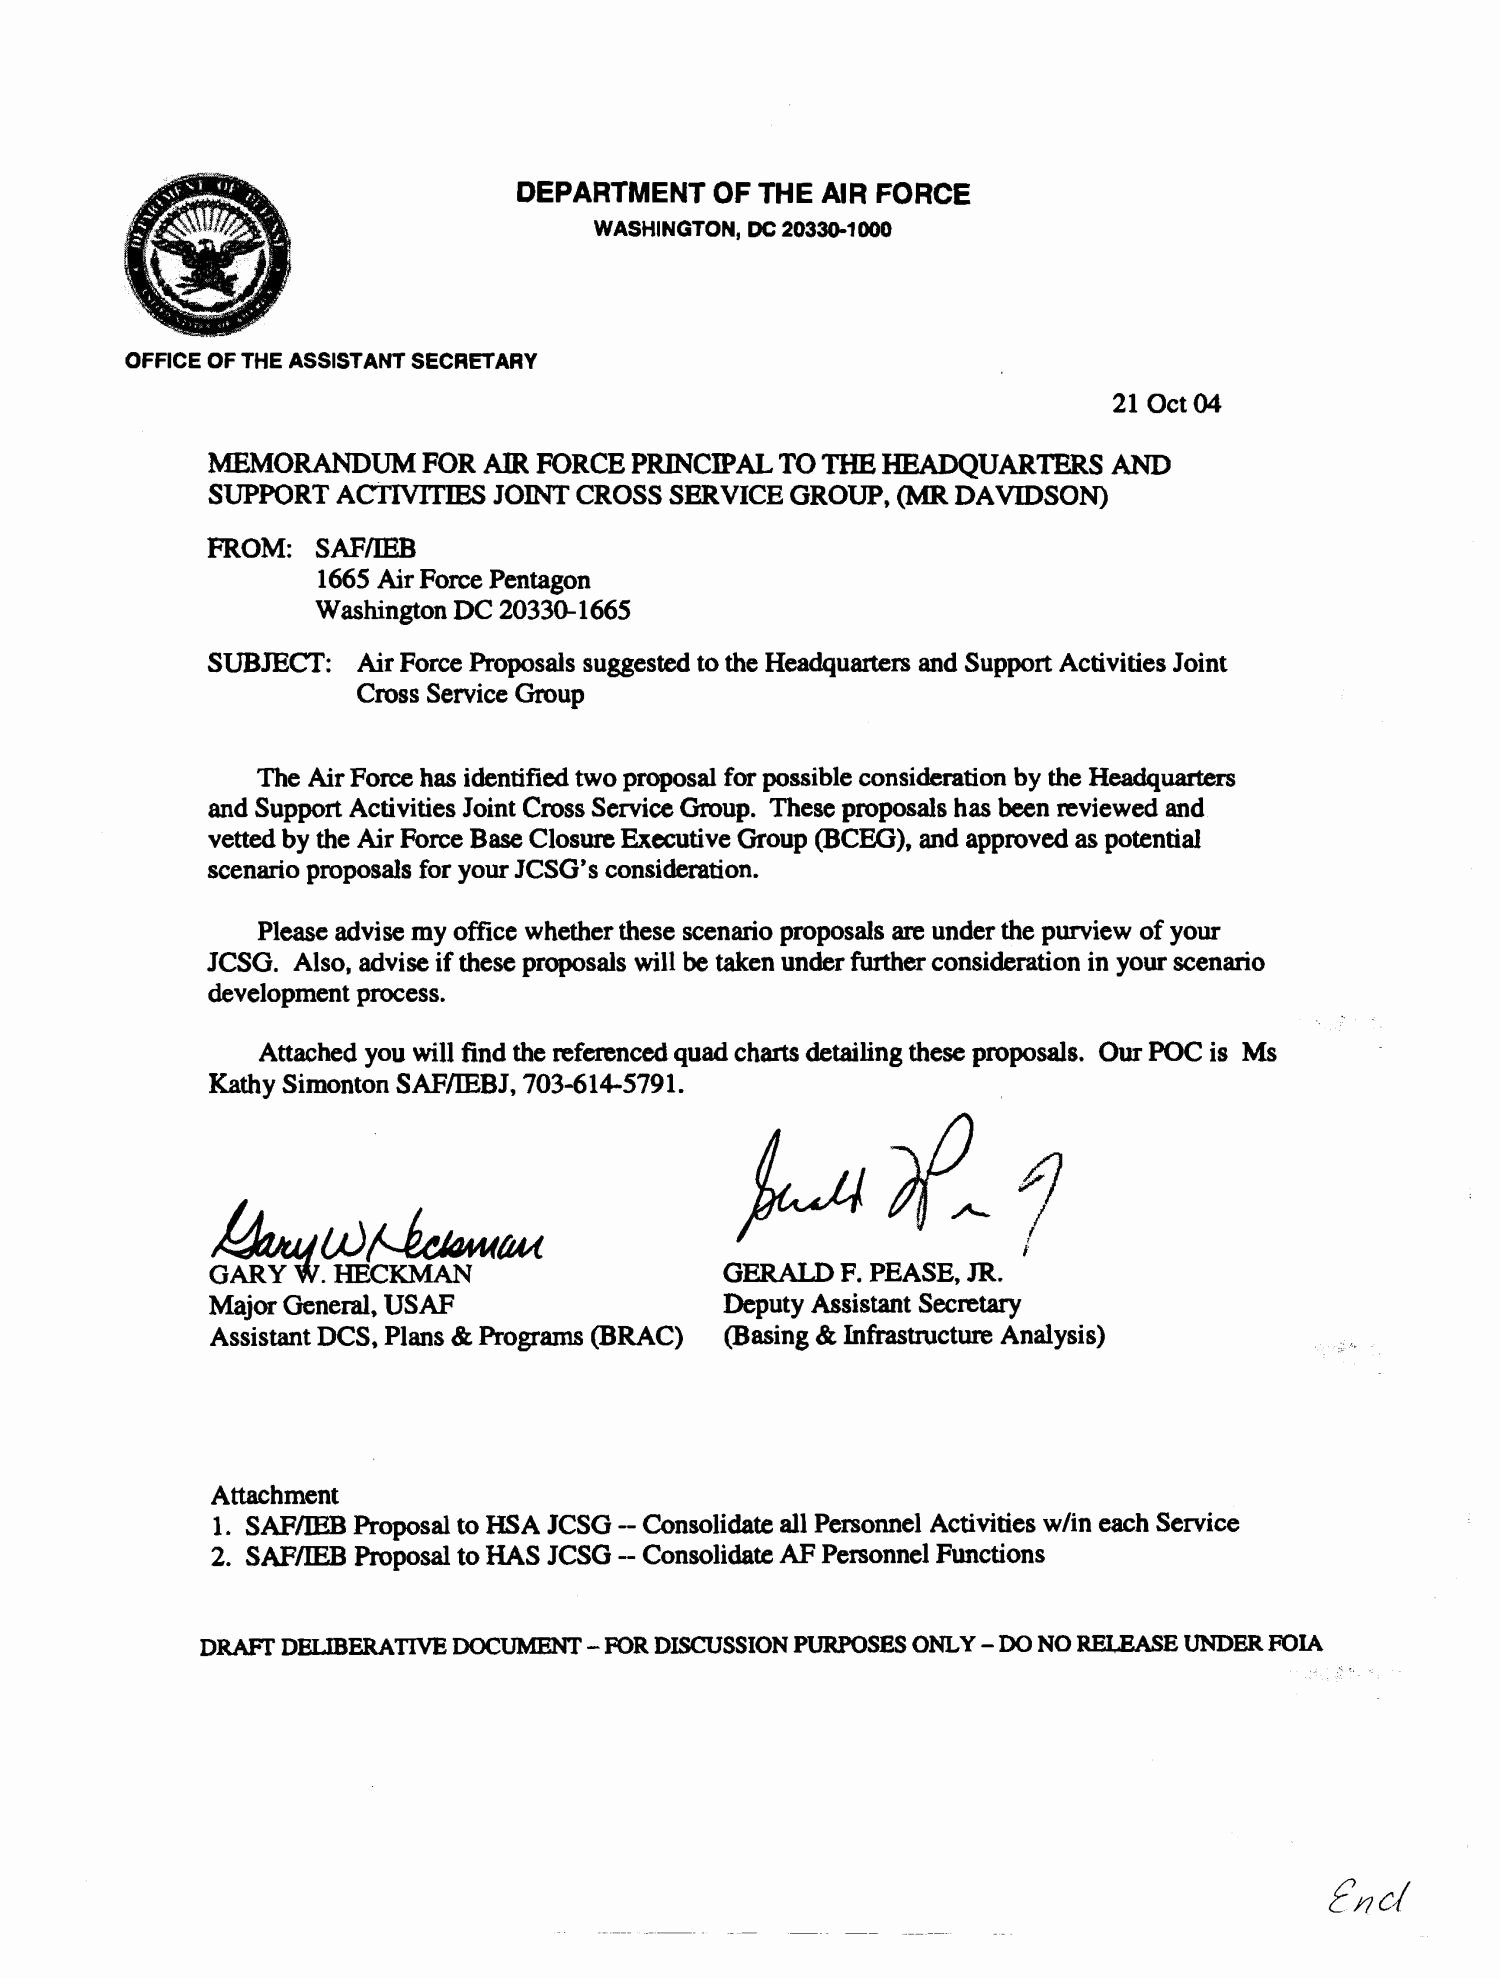 Air force Memorandum Template New Memo On Air force Proposals to Realign Military and